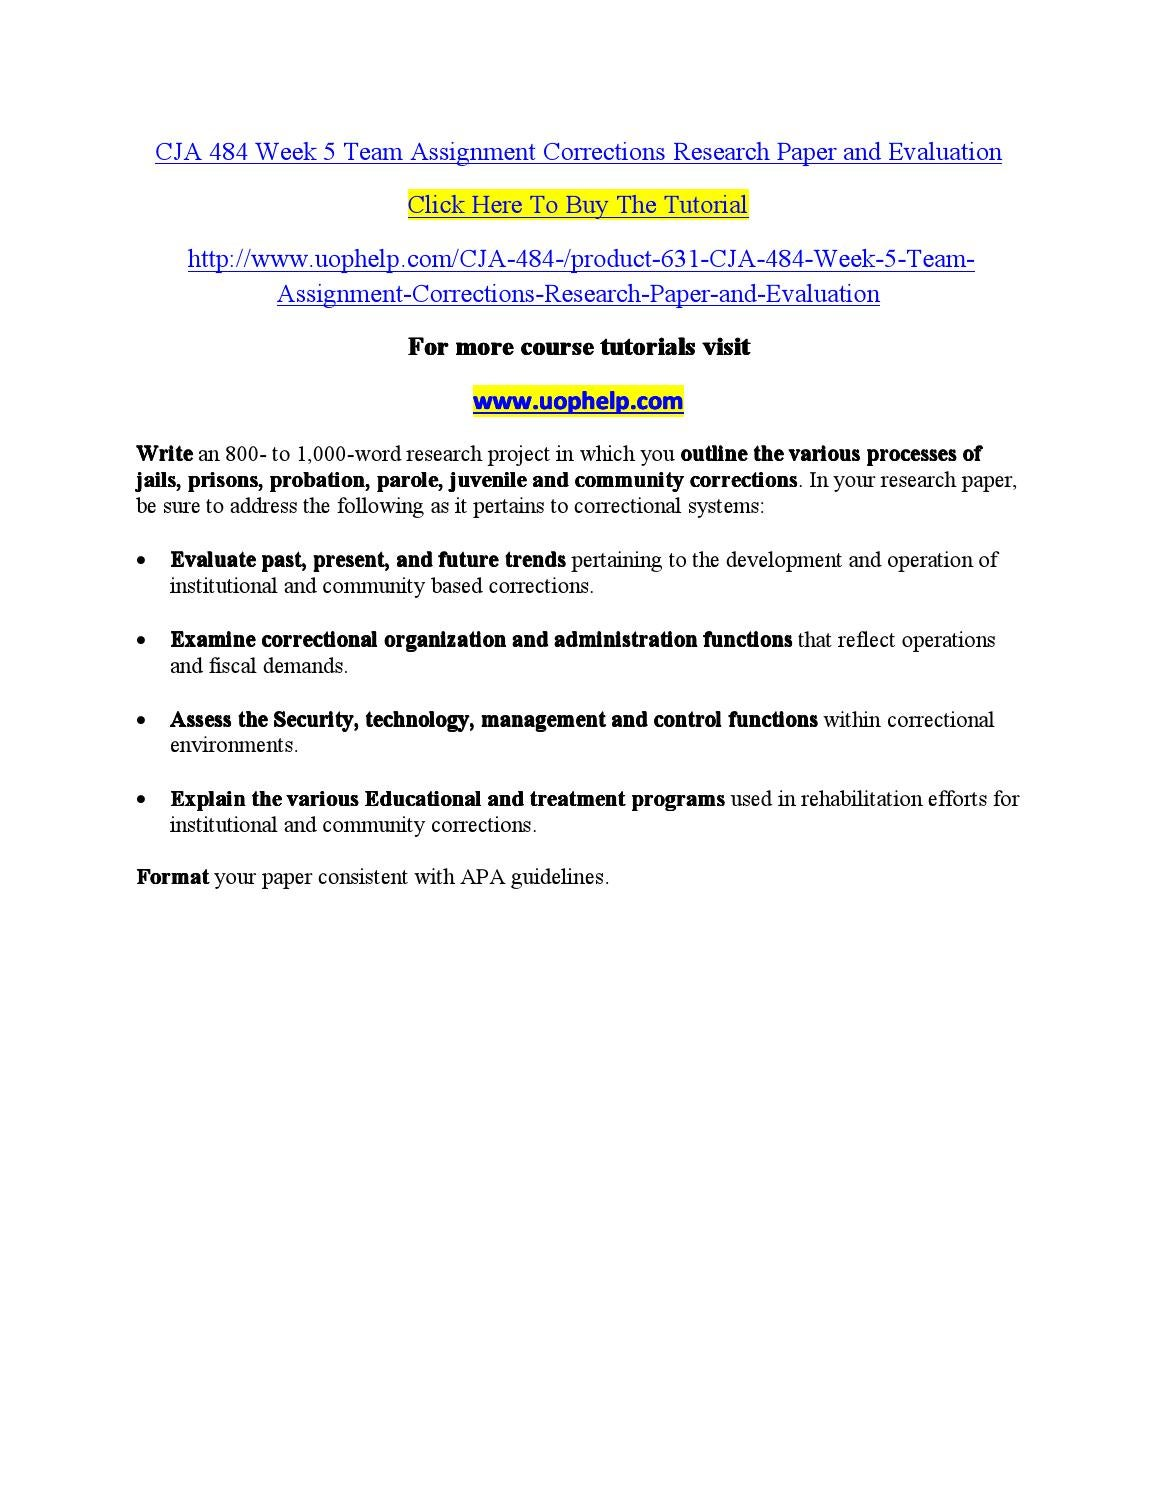 Research paper citing website